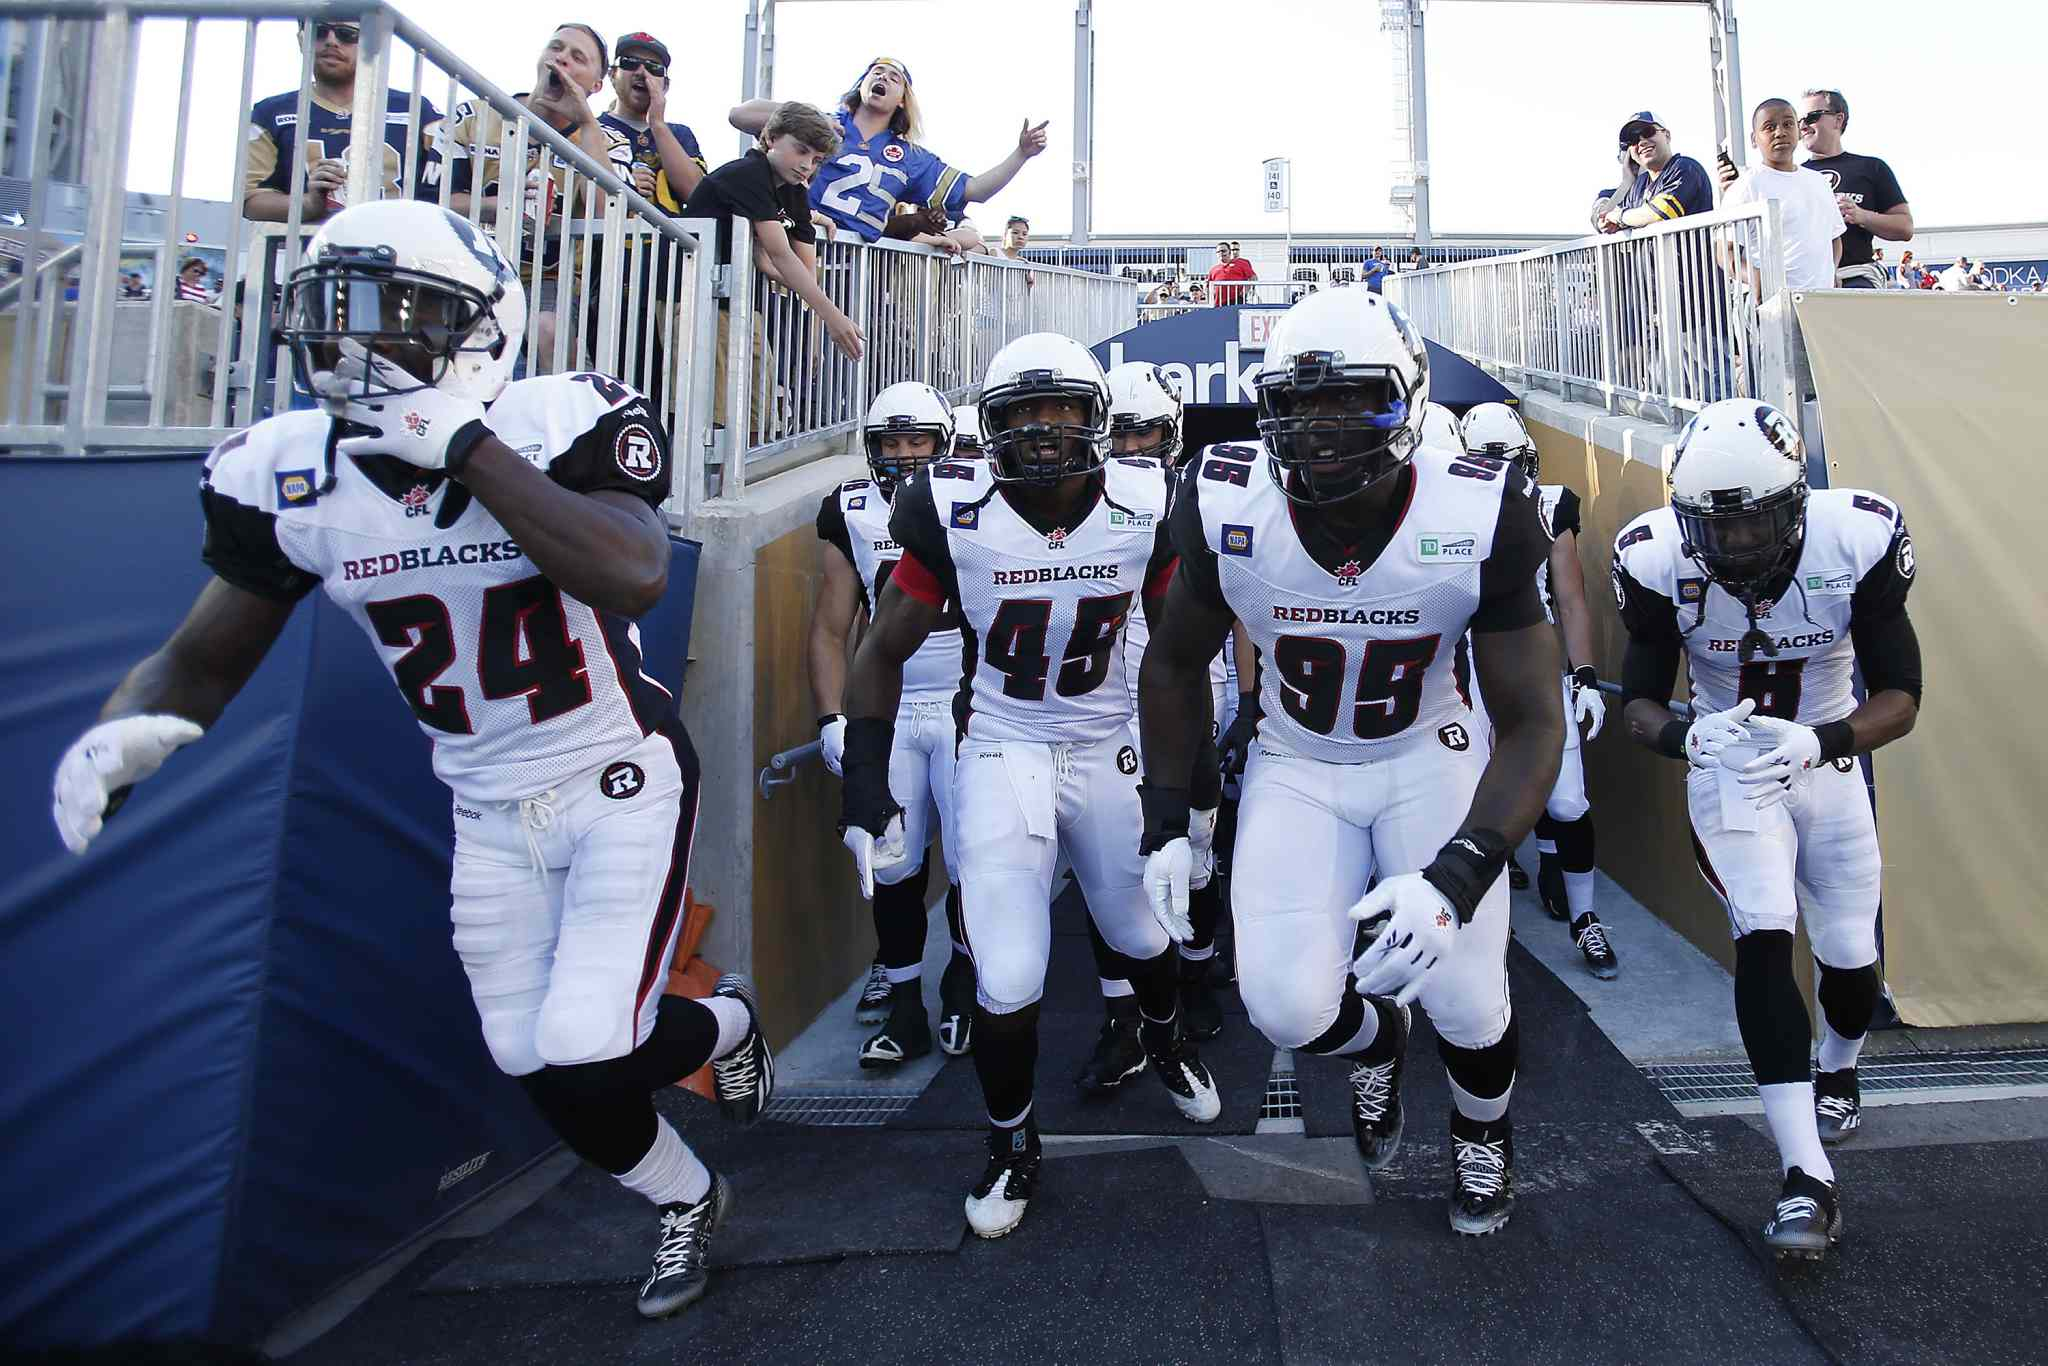 Ottawa Redblacks hit the field for their CFL game against the Winnipeg Blue Bombers in Winnipeg on Thursday.